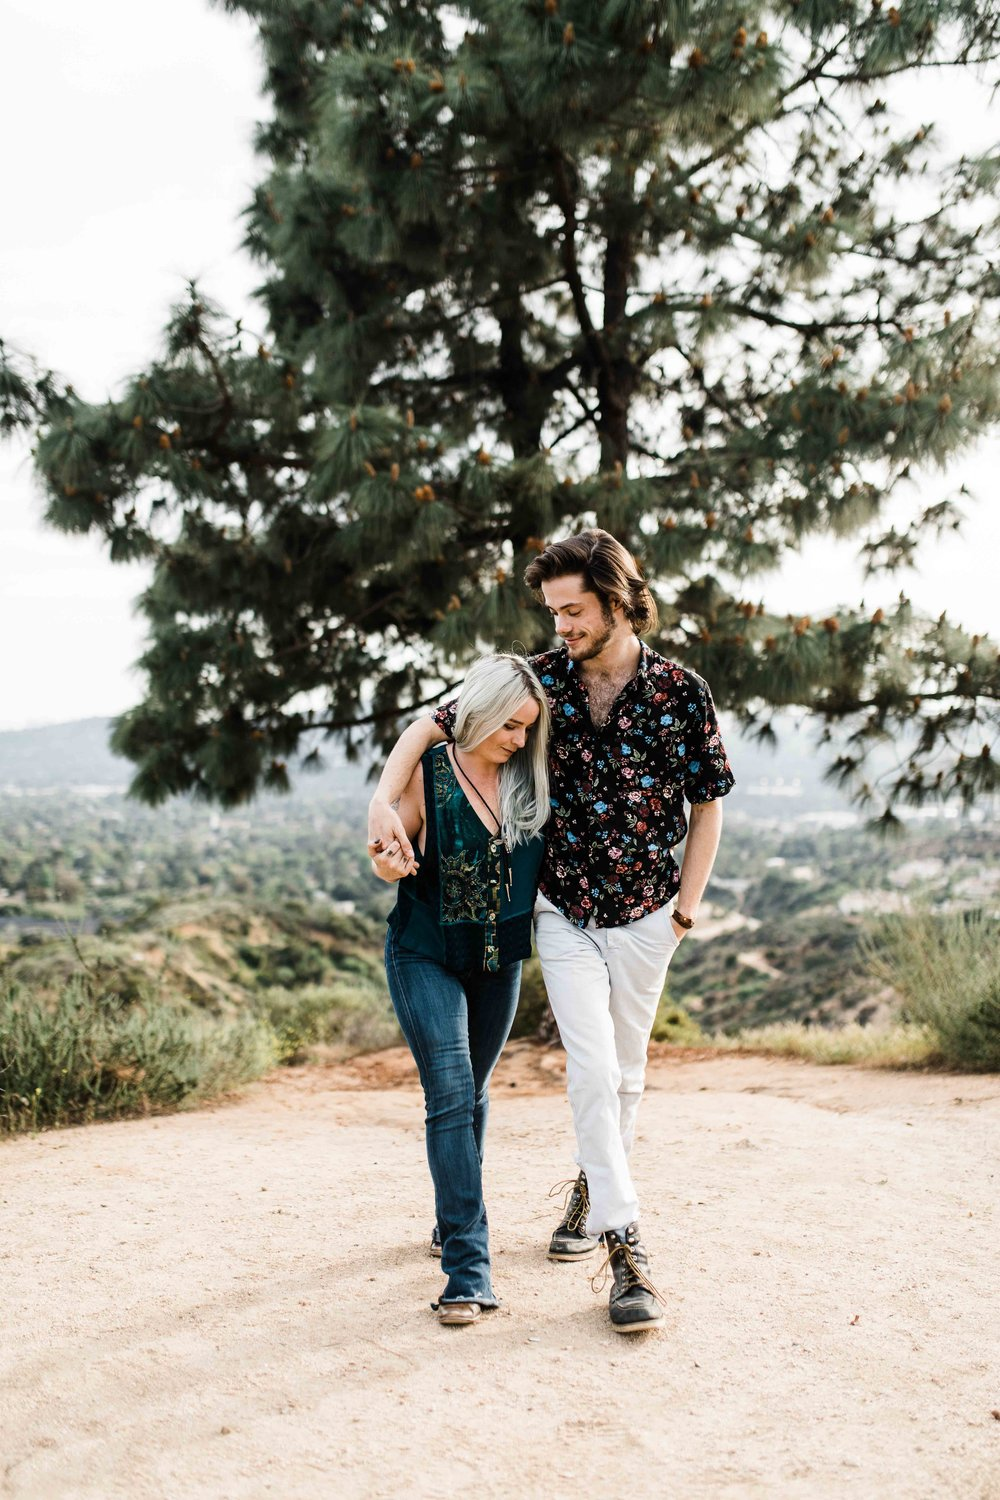 Tara&Will-Clarisse-Rae-Photo-Video-Southern-California-Wedding-Photographer-Los-Angeles-Engagement-Session_52